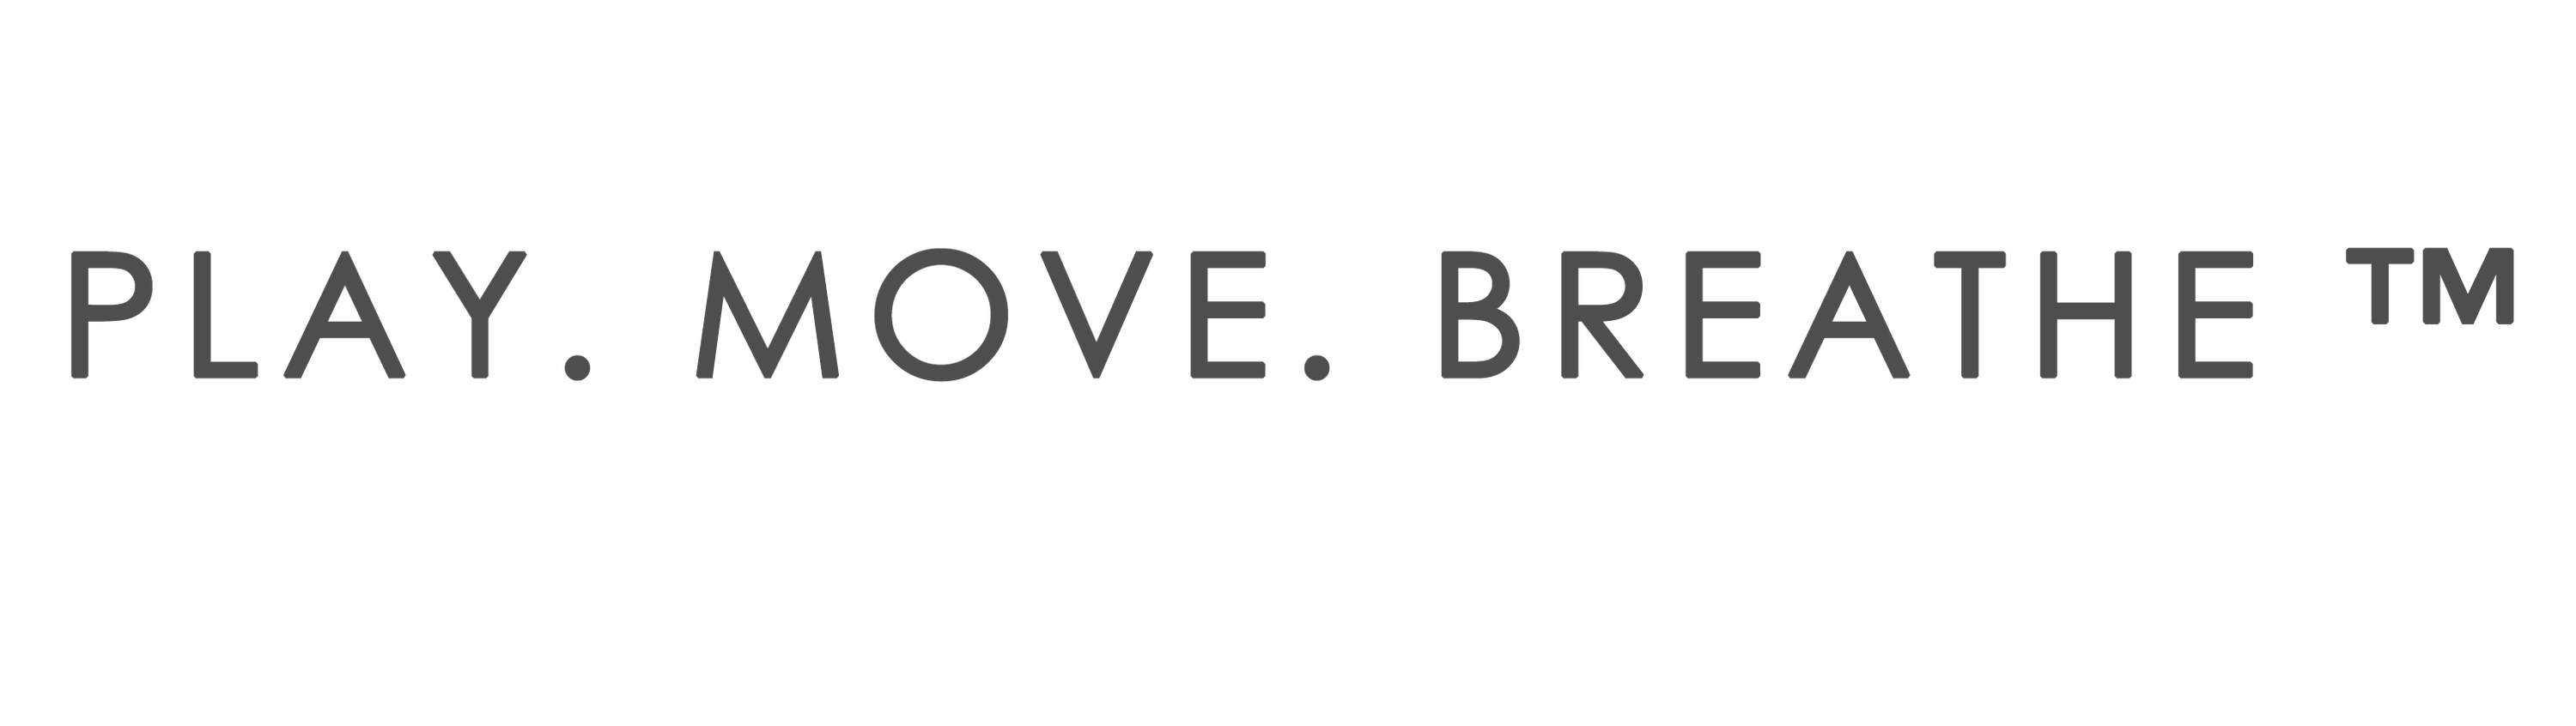 PLAY. MOVE. BREATHE ™